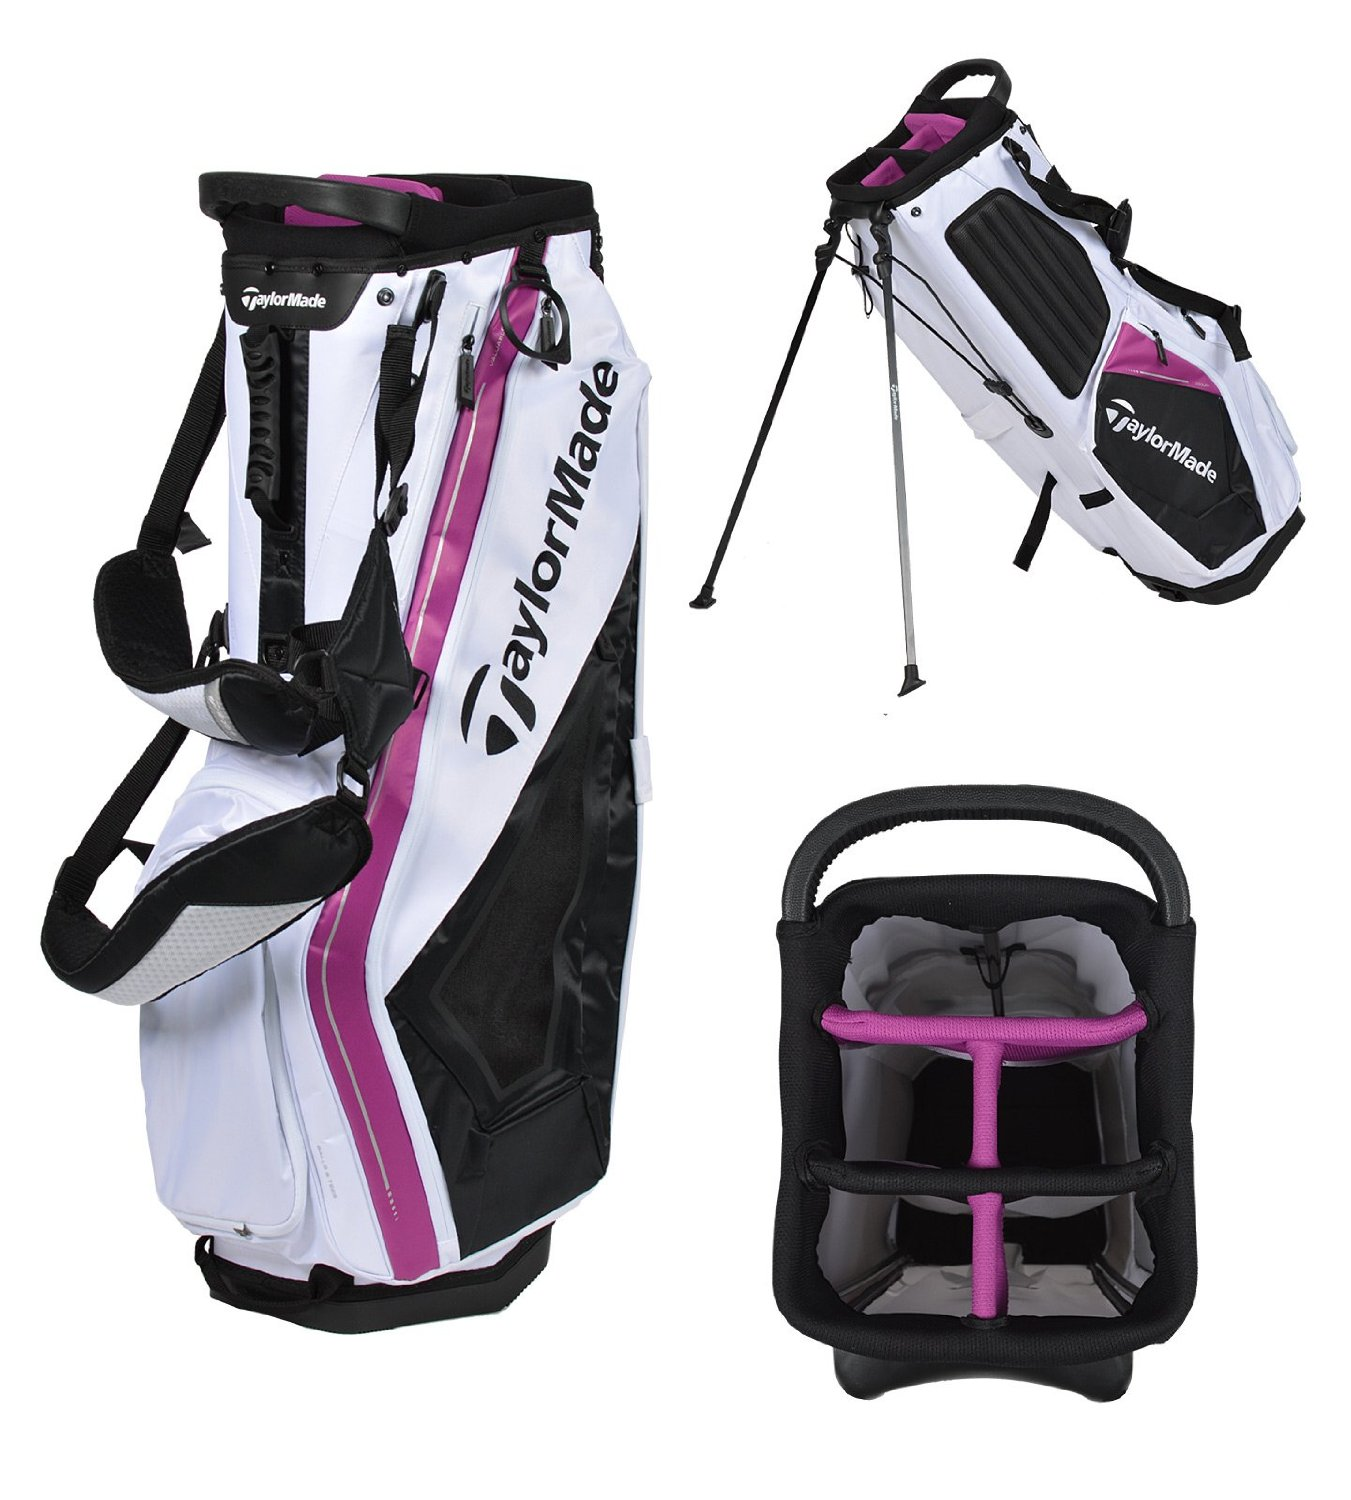 Taylormade Womens Purelite Golf Stand Bags